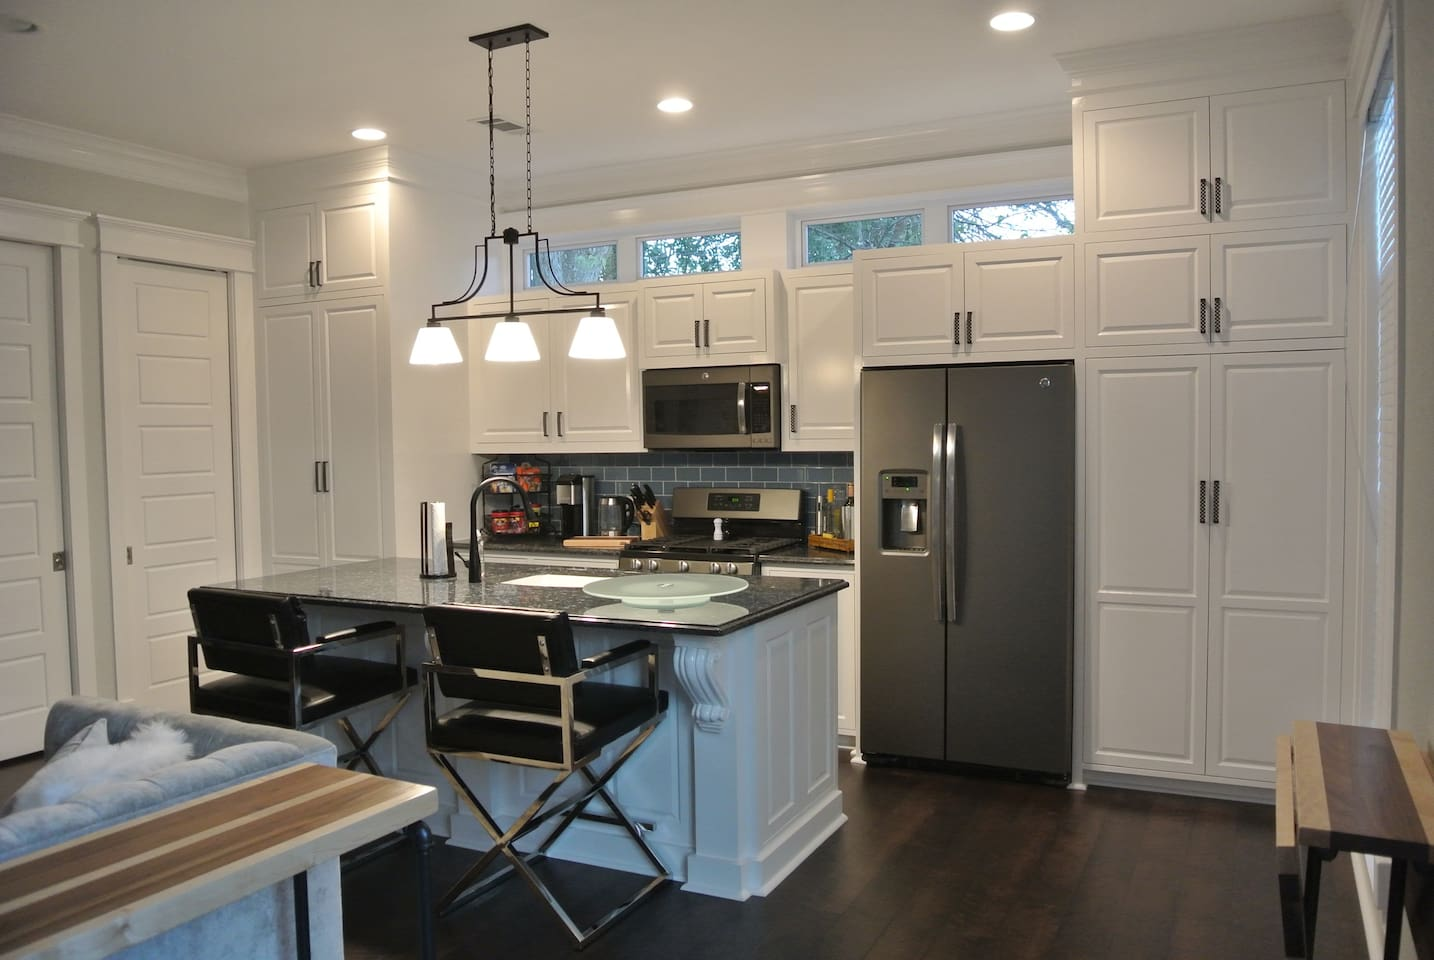 Full Kitchen- Stainless Steel Appliances, 10 ft. ceilings. 12 Miles from NRG stadium, 4 miles to Museum District and 1 mile to downtown.